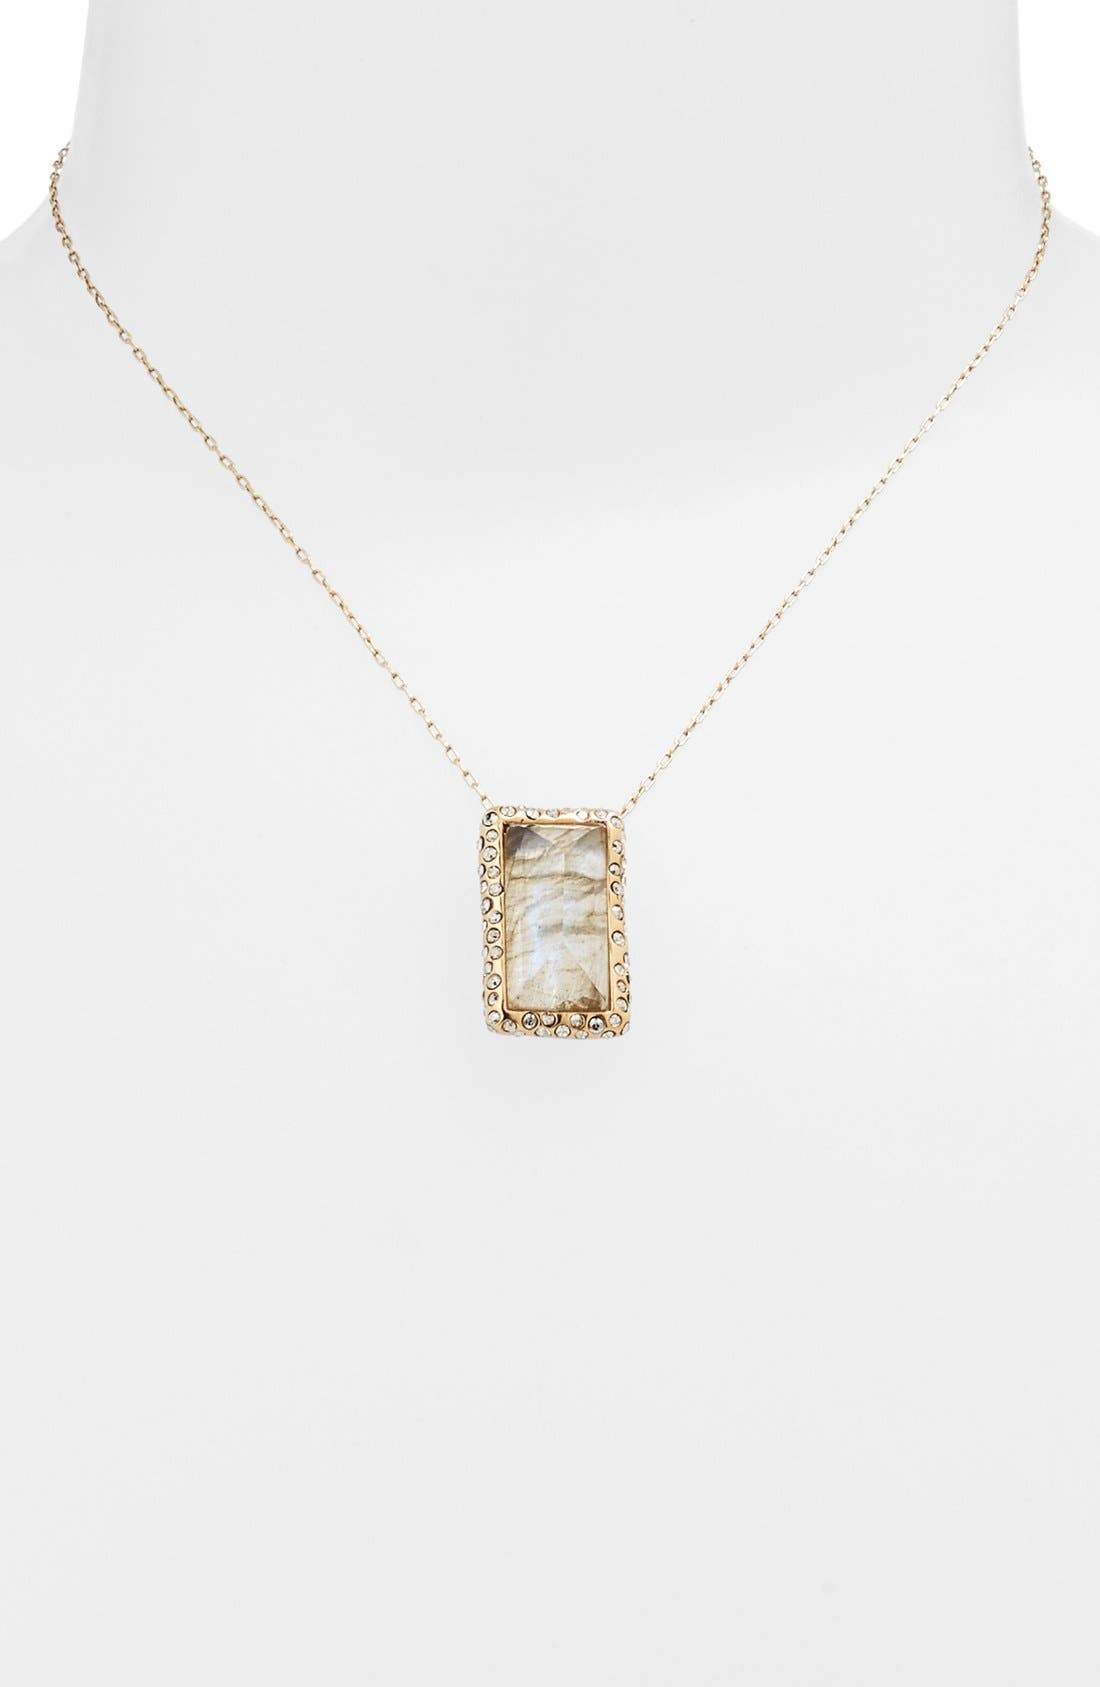 Main Image - Alexis Bittar 'Miss Havisham' Pendant Necklace